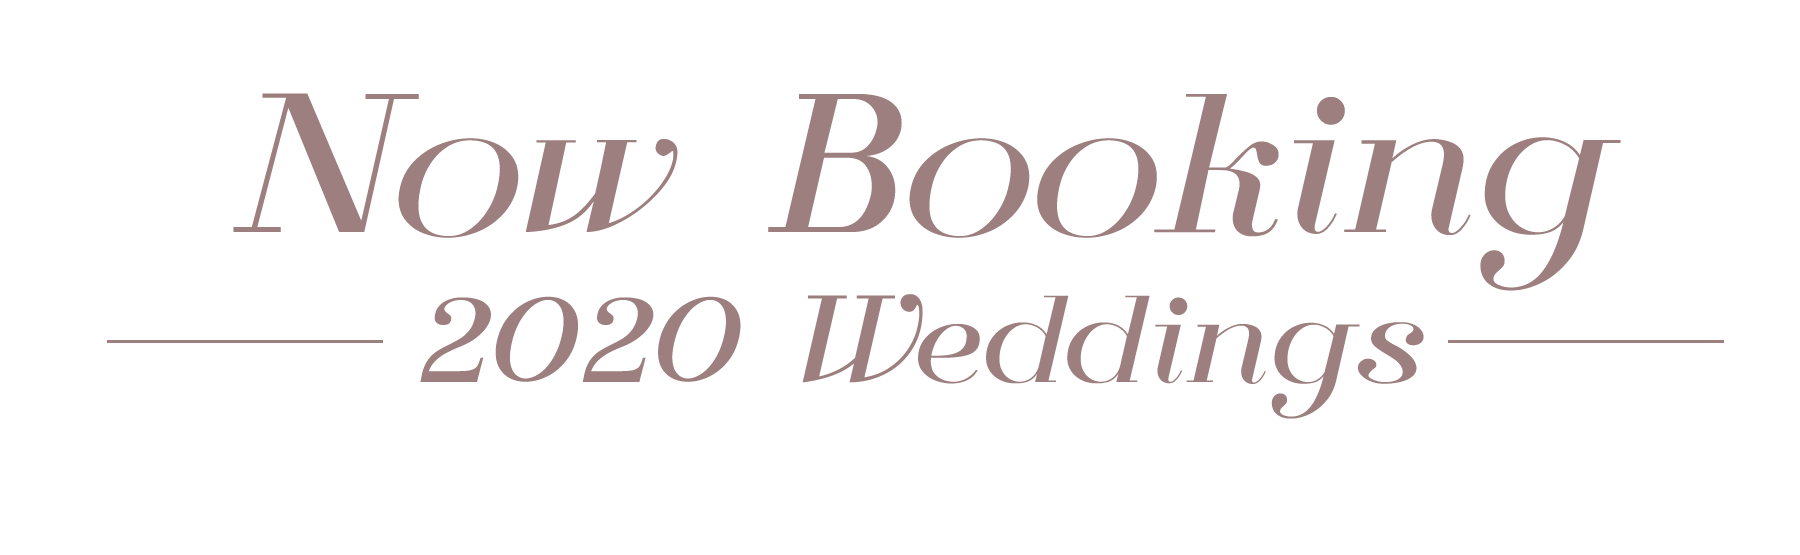 now booking weddings.png